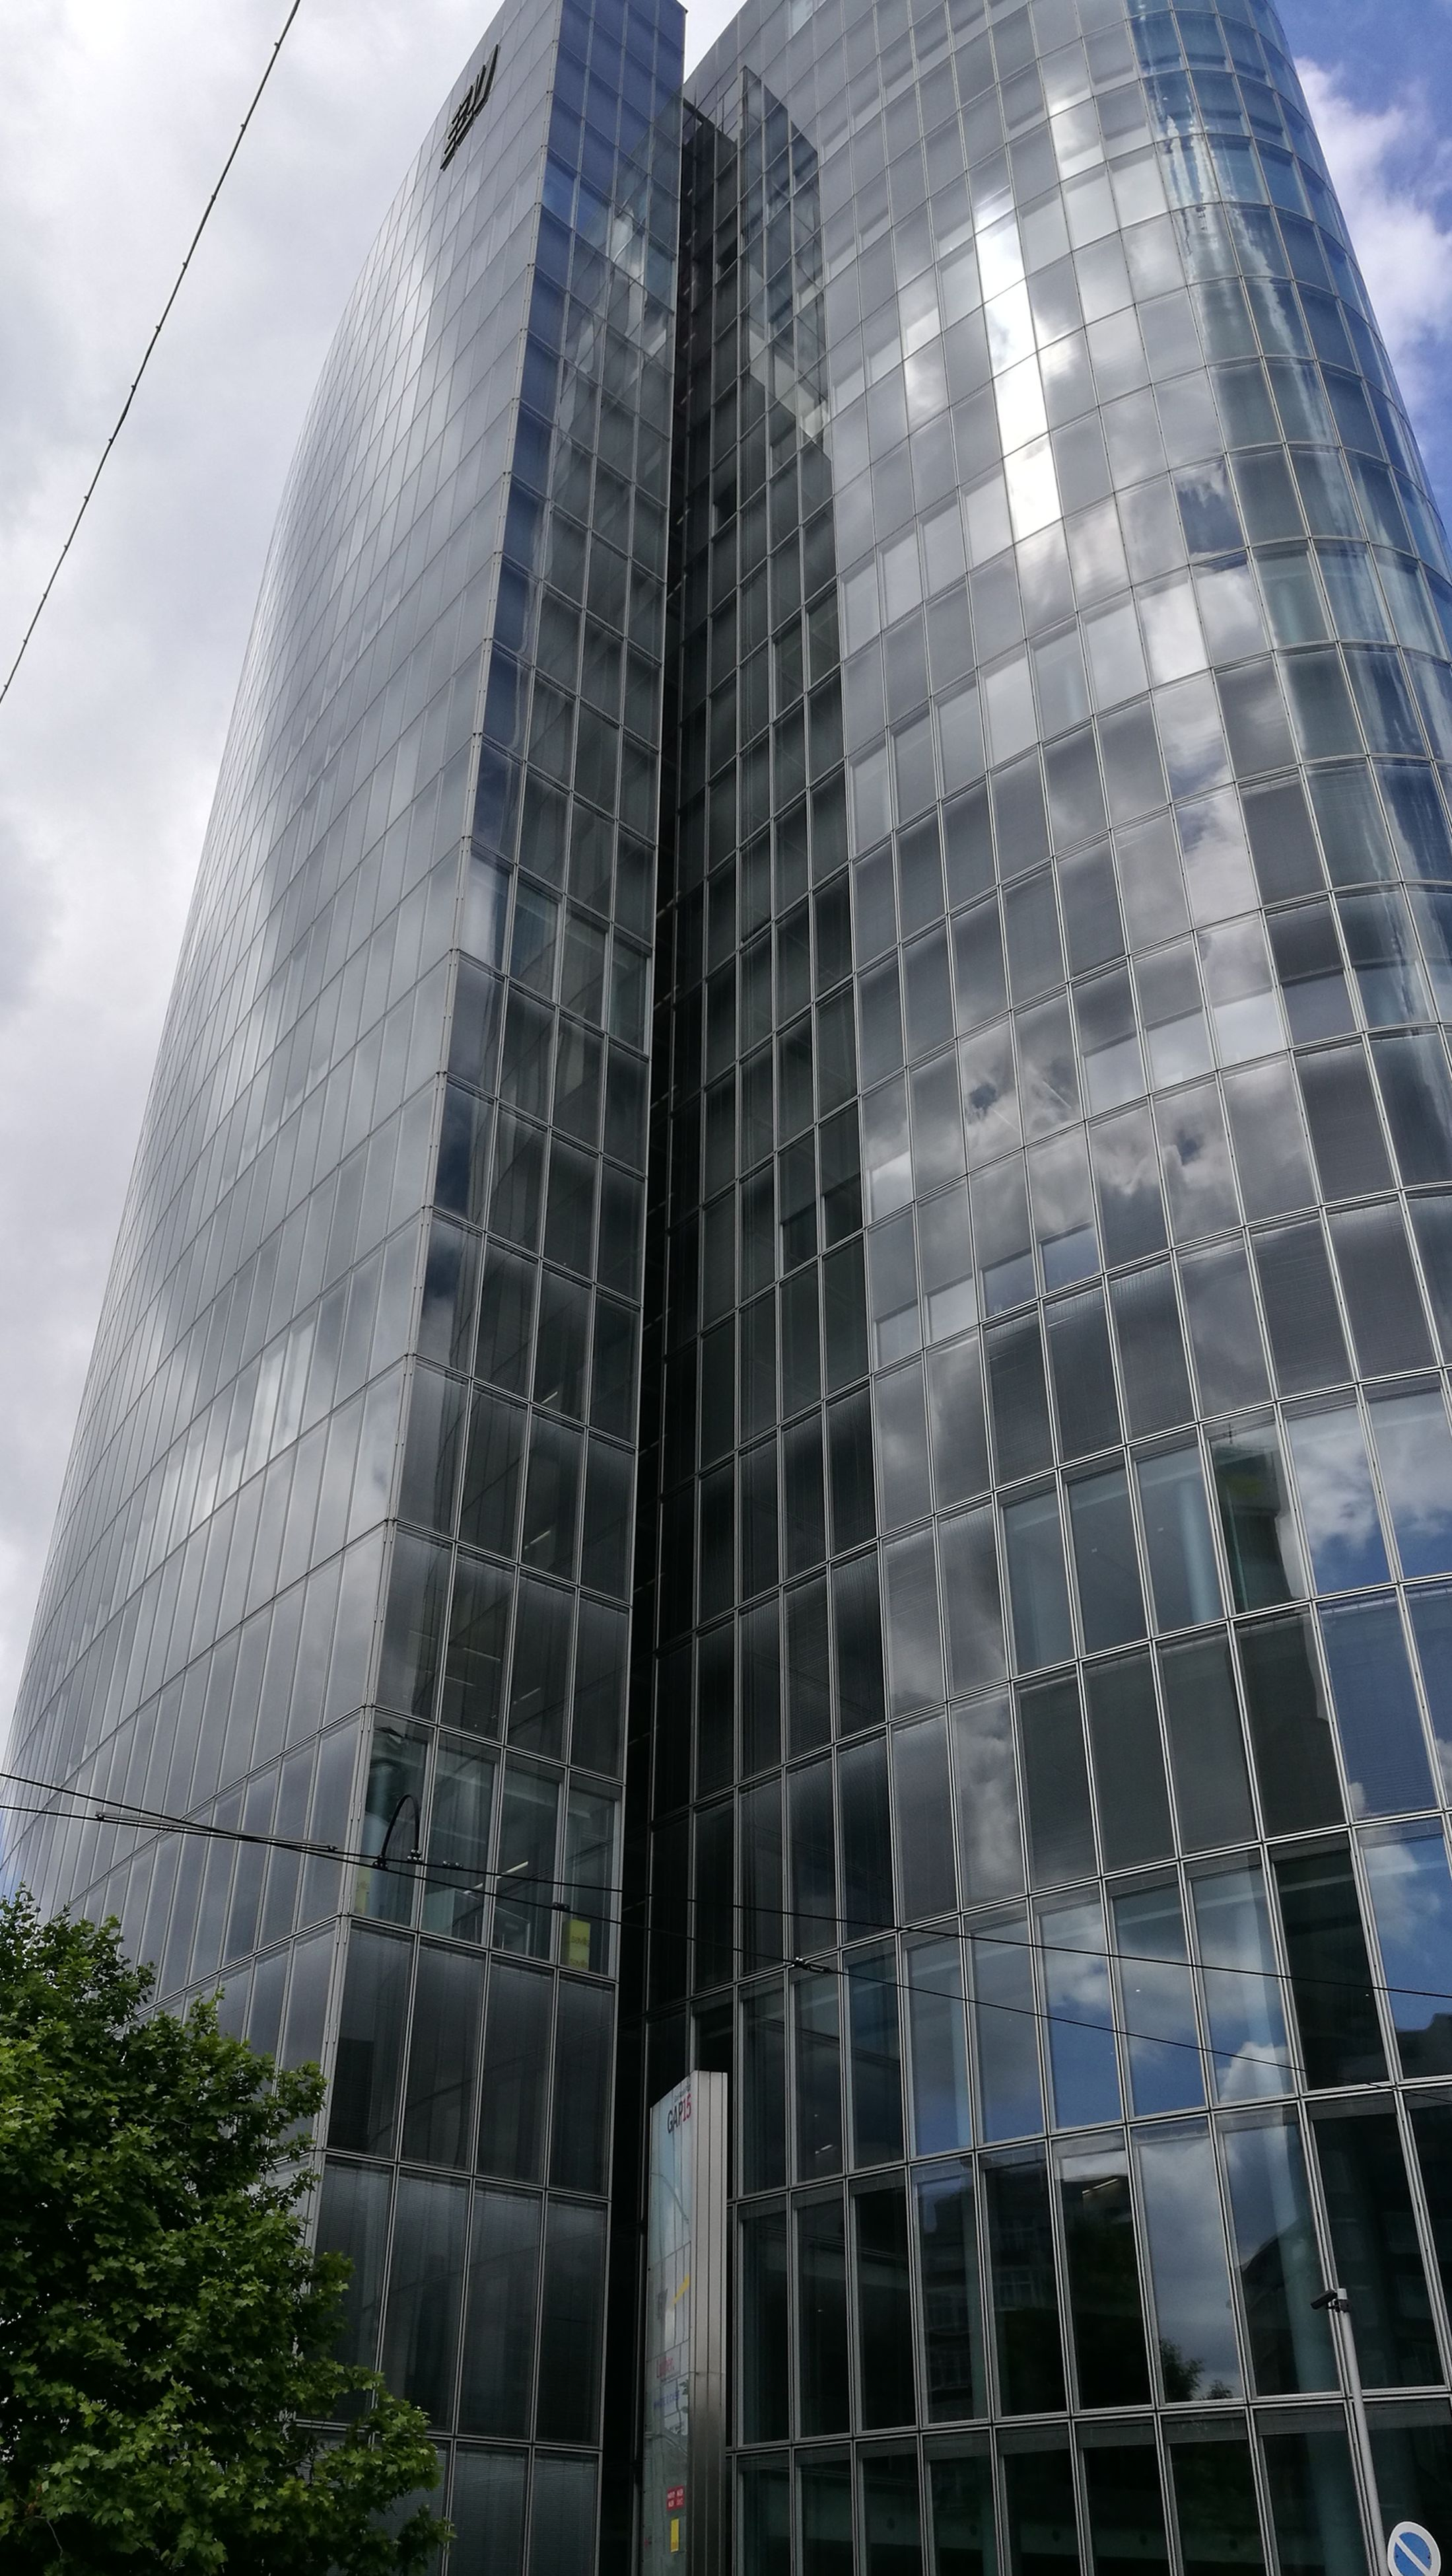 modern, architecture, low angle view, building exterior, skyscraper, sky, built structure, city, day, outdoors, no people, tall, growth